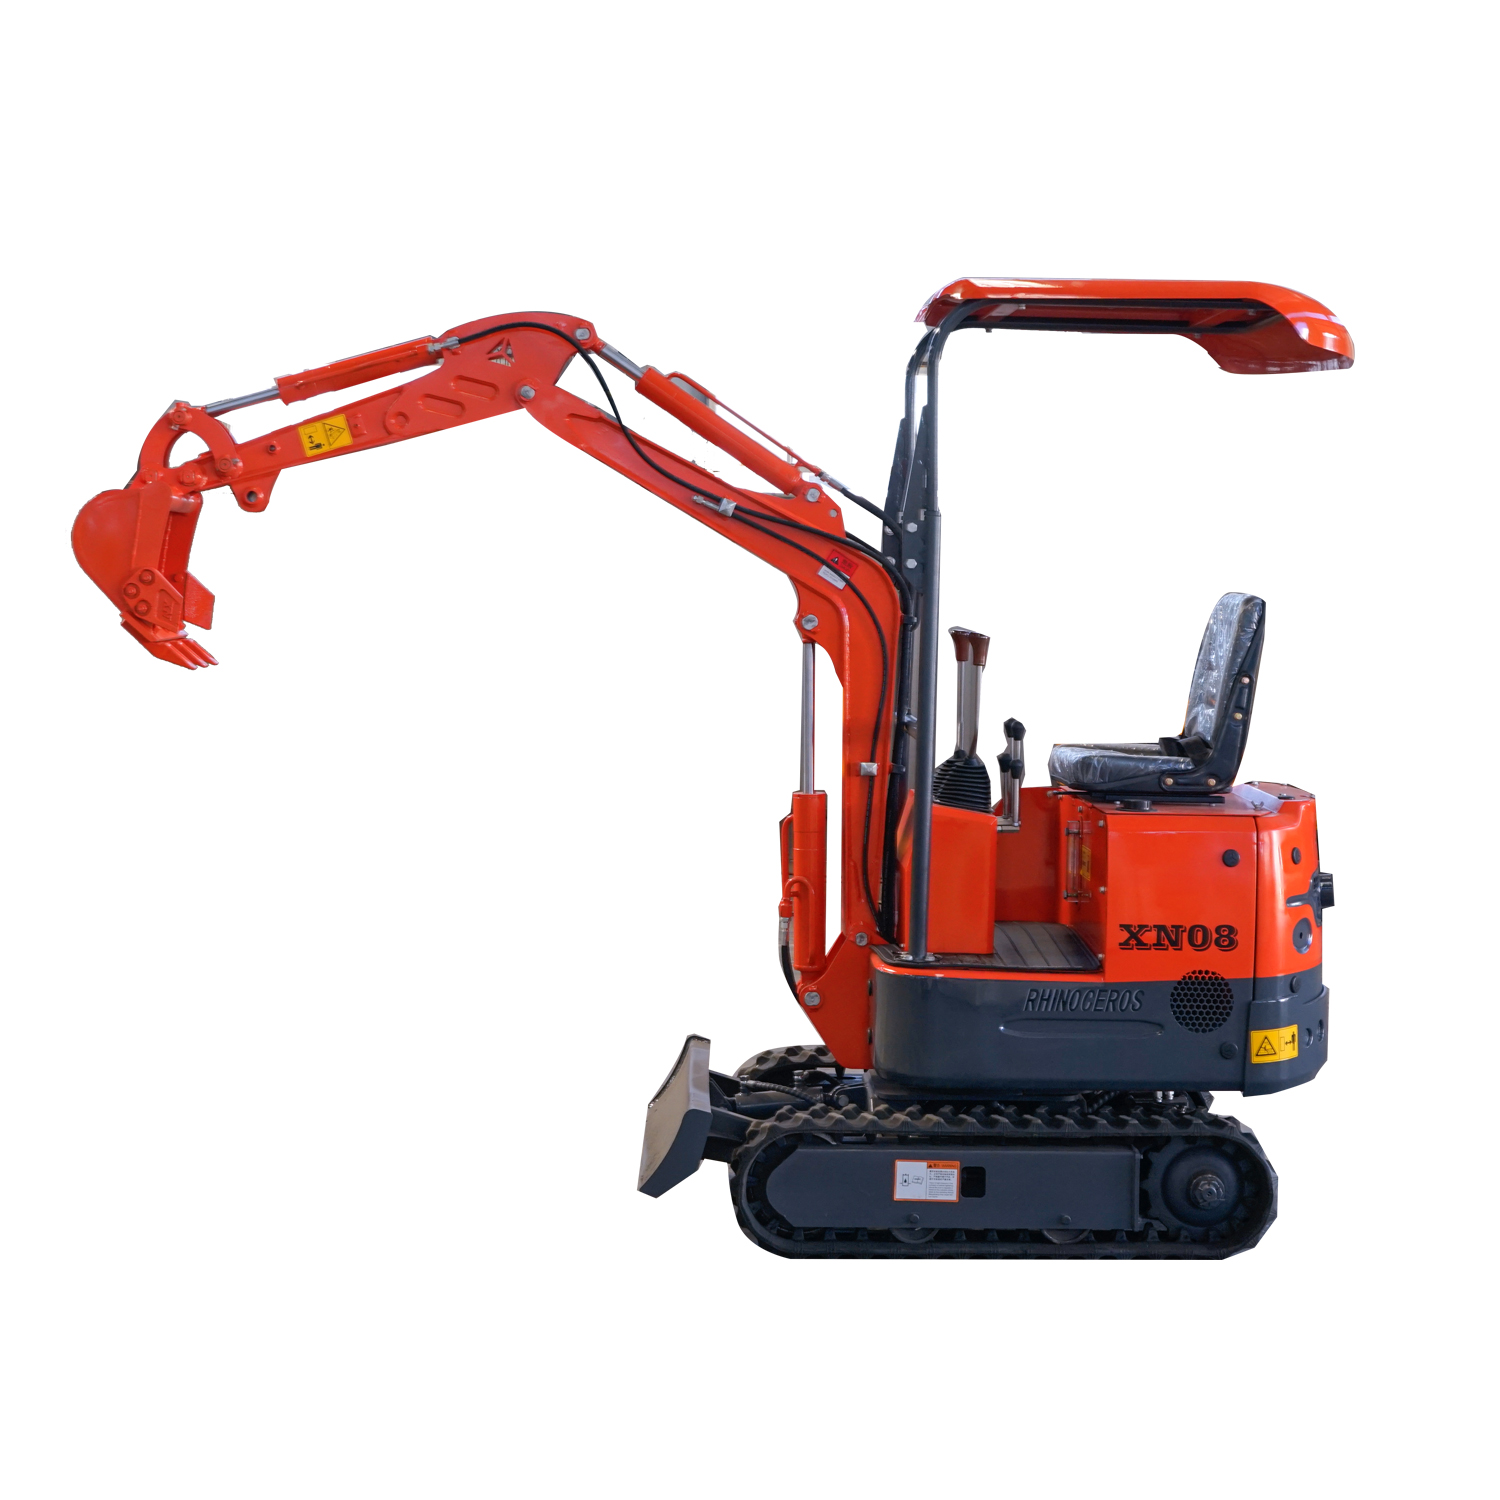 Shandong Mini Escavatore XN08 Mini Escavatore 0.8Ton